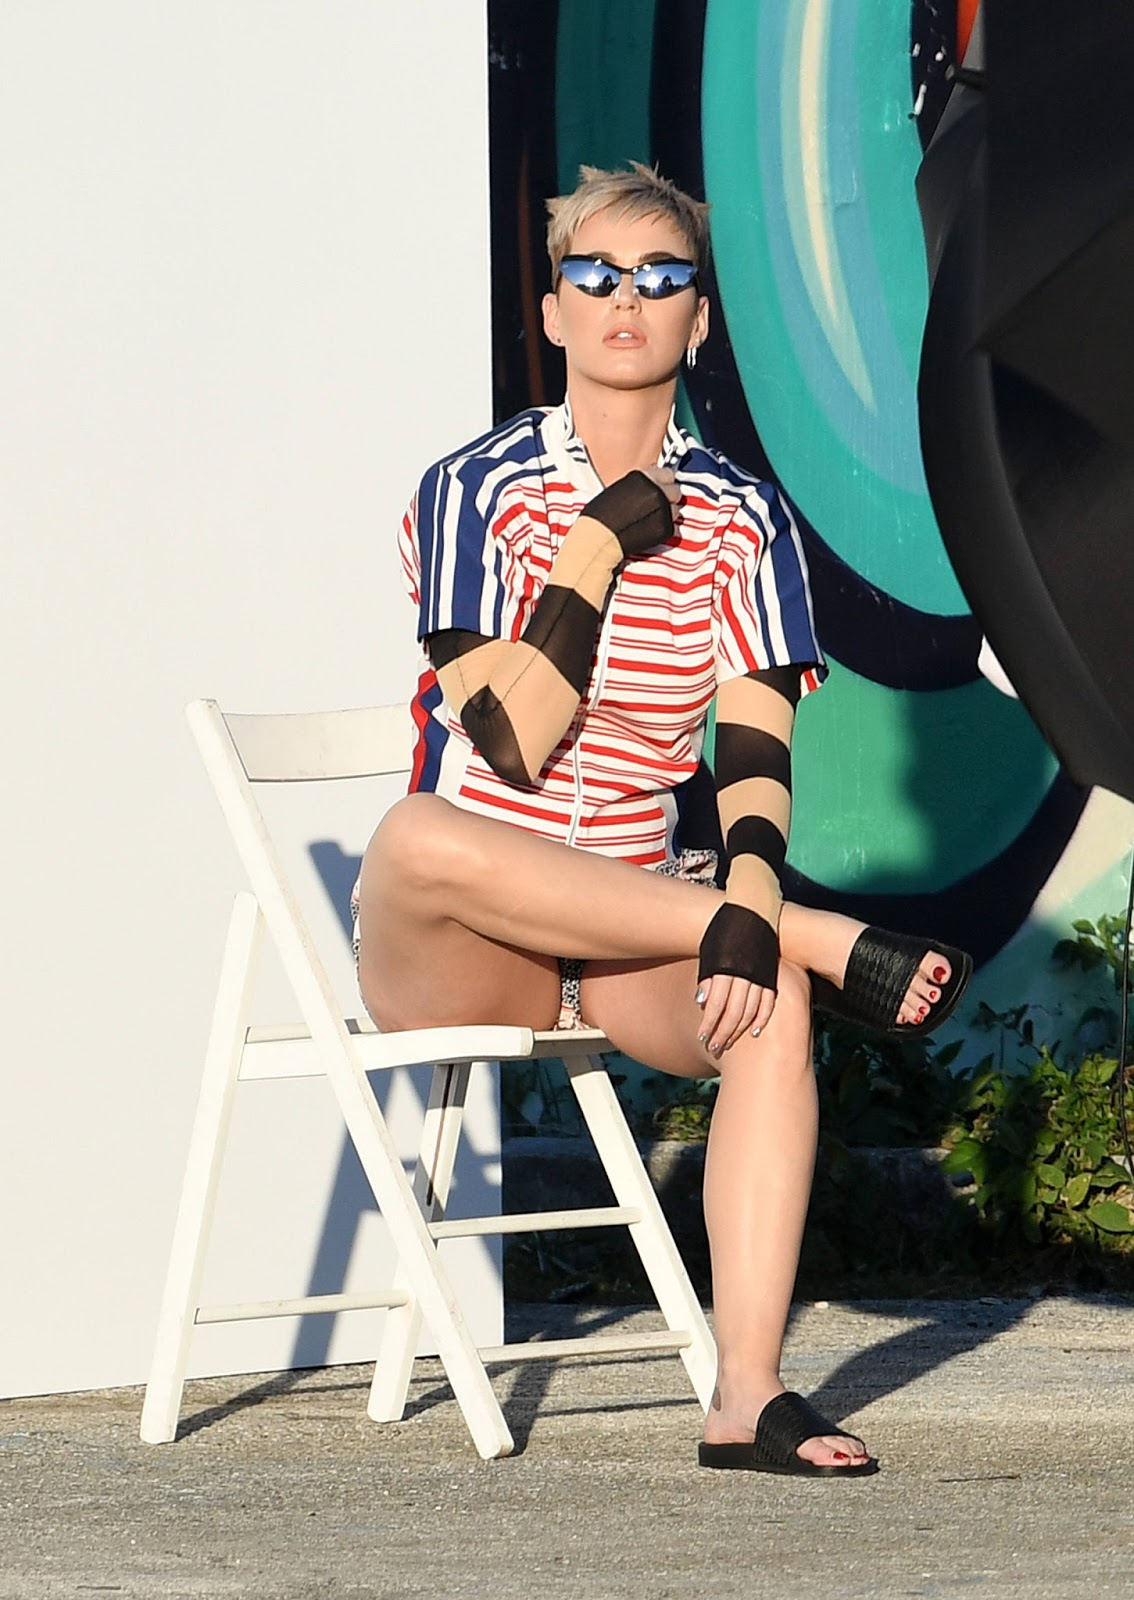 Katy Perry Shows off her Legs At a Photoshoot in Miami